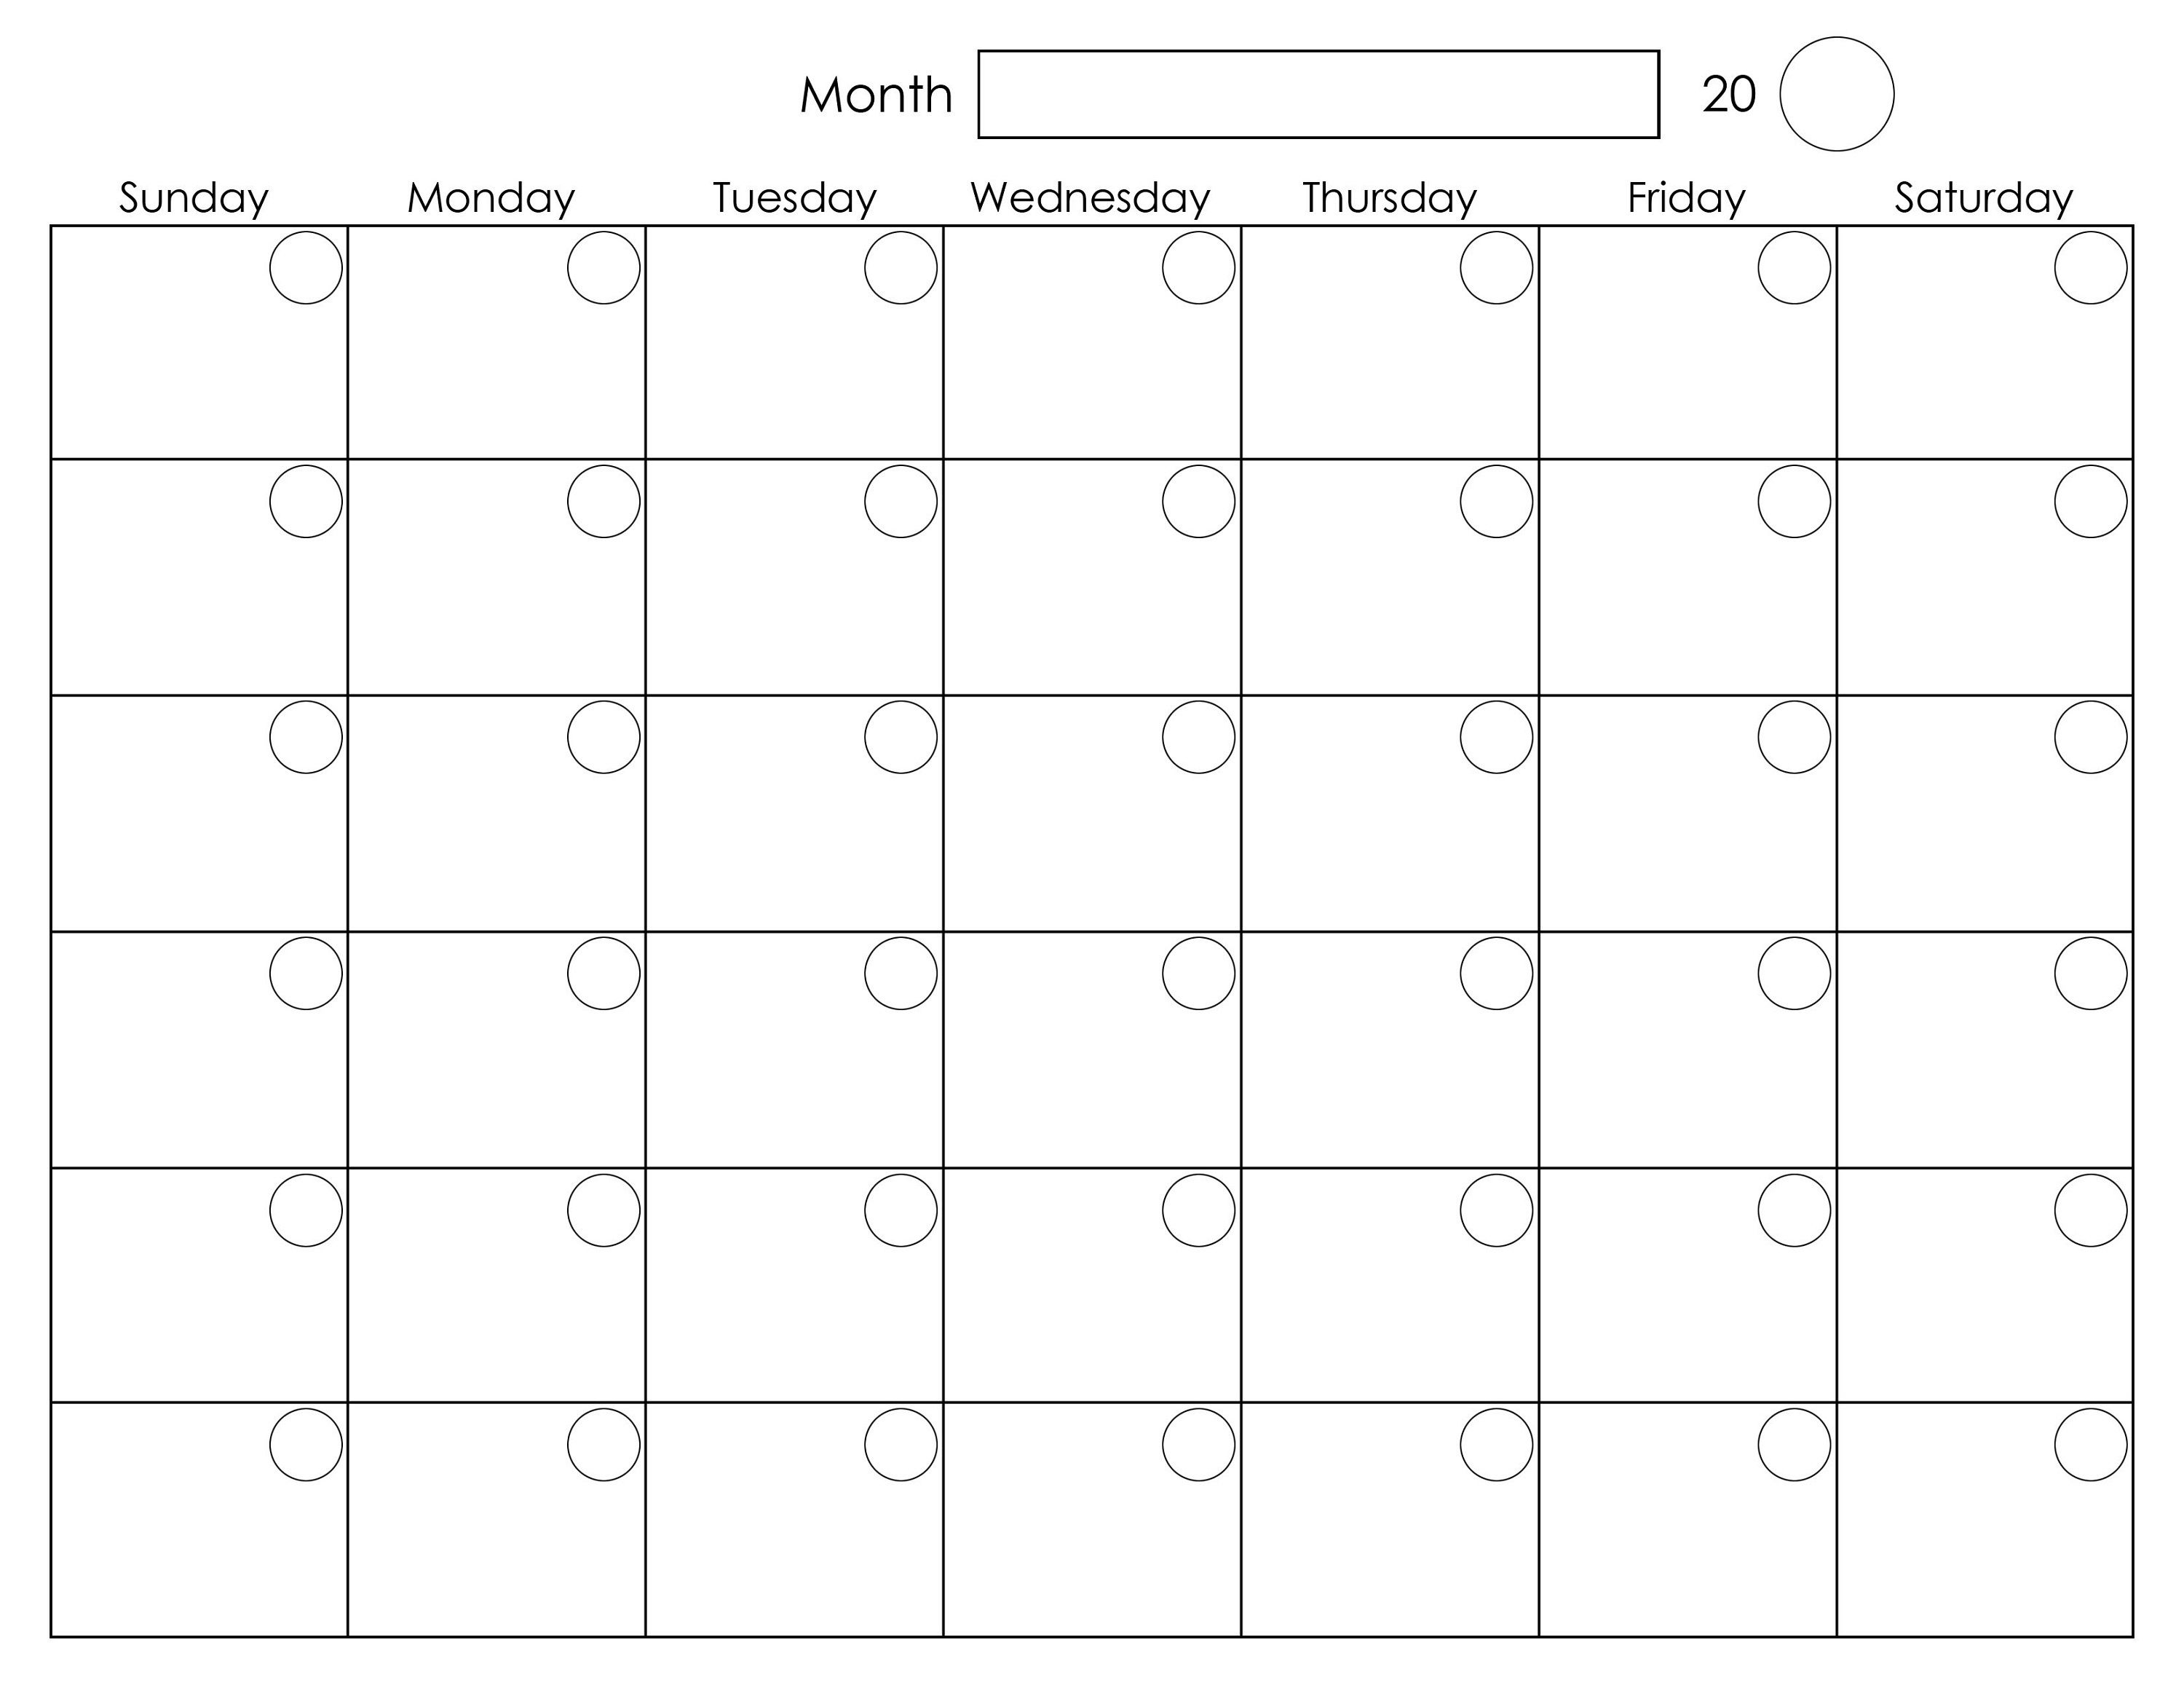 Weekly Calendar Template : Printable blank monthly calendar activity shelter